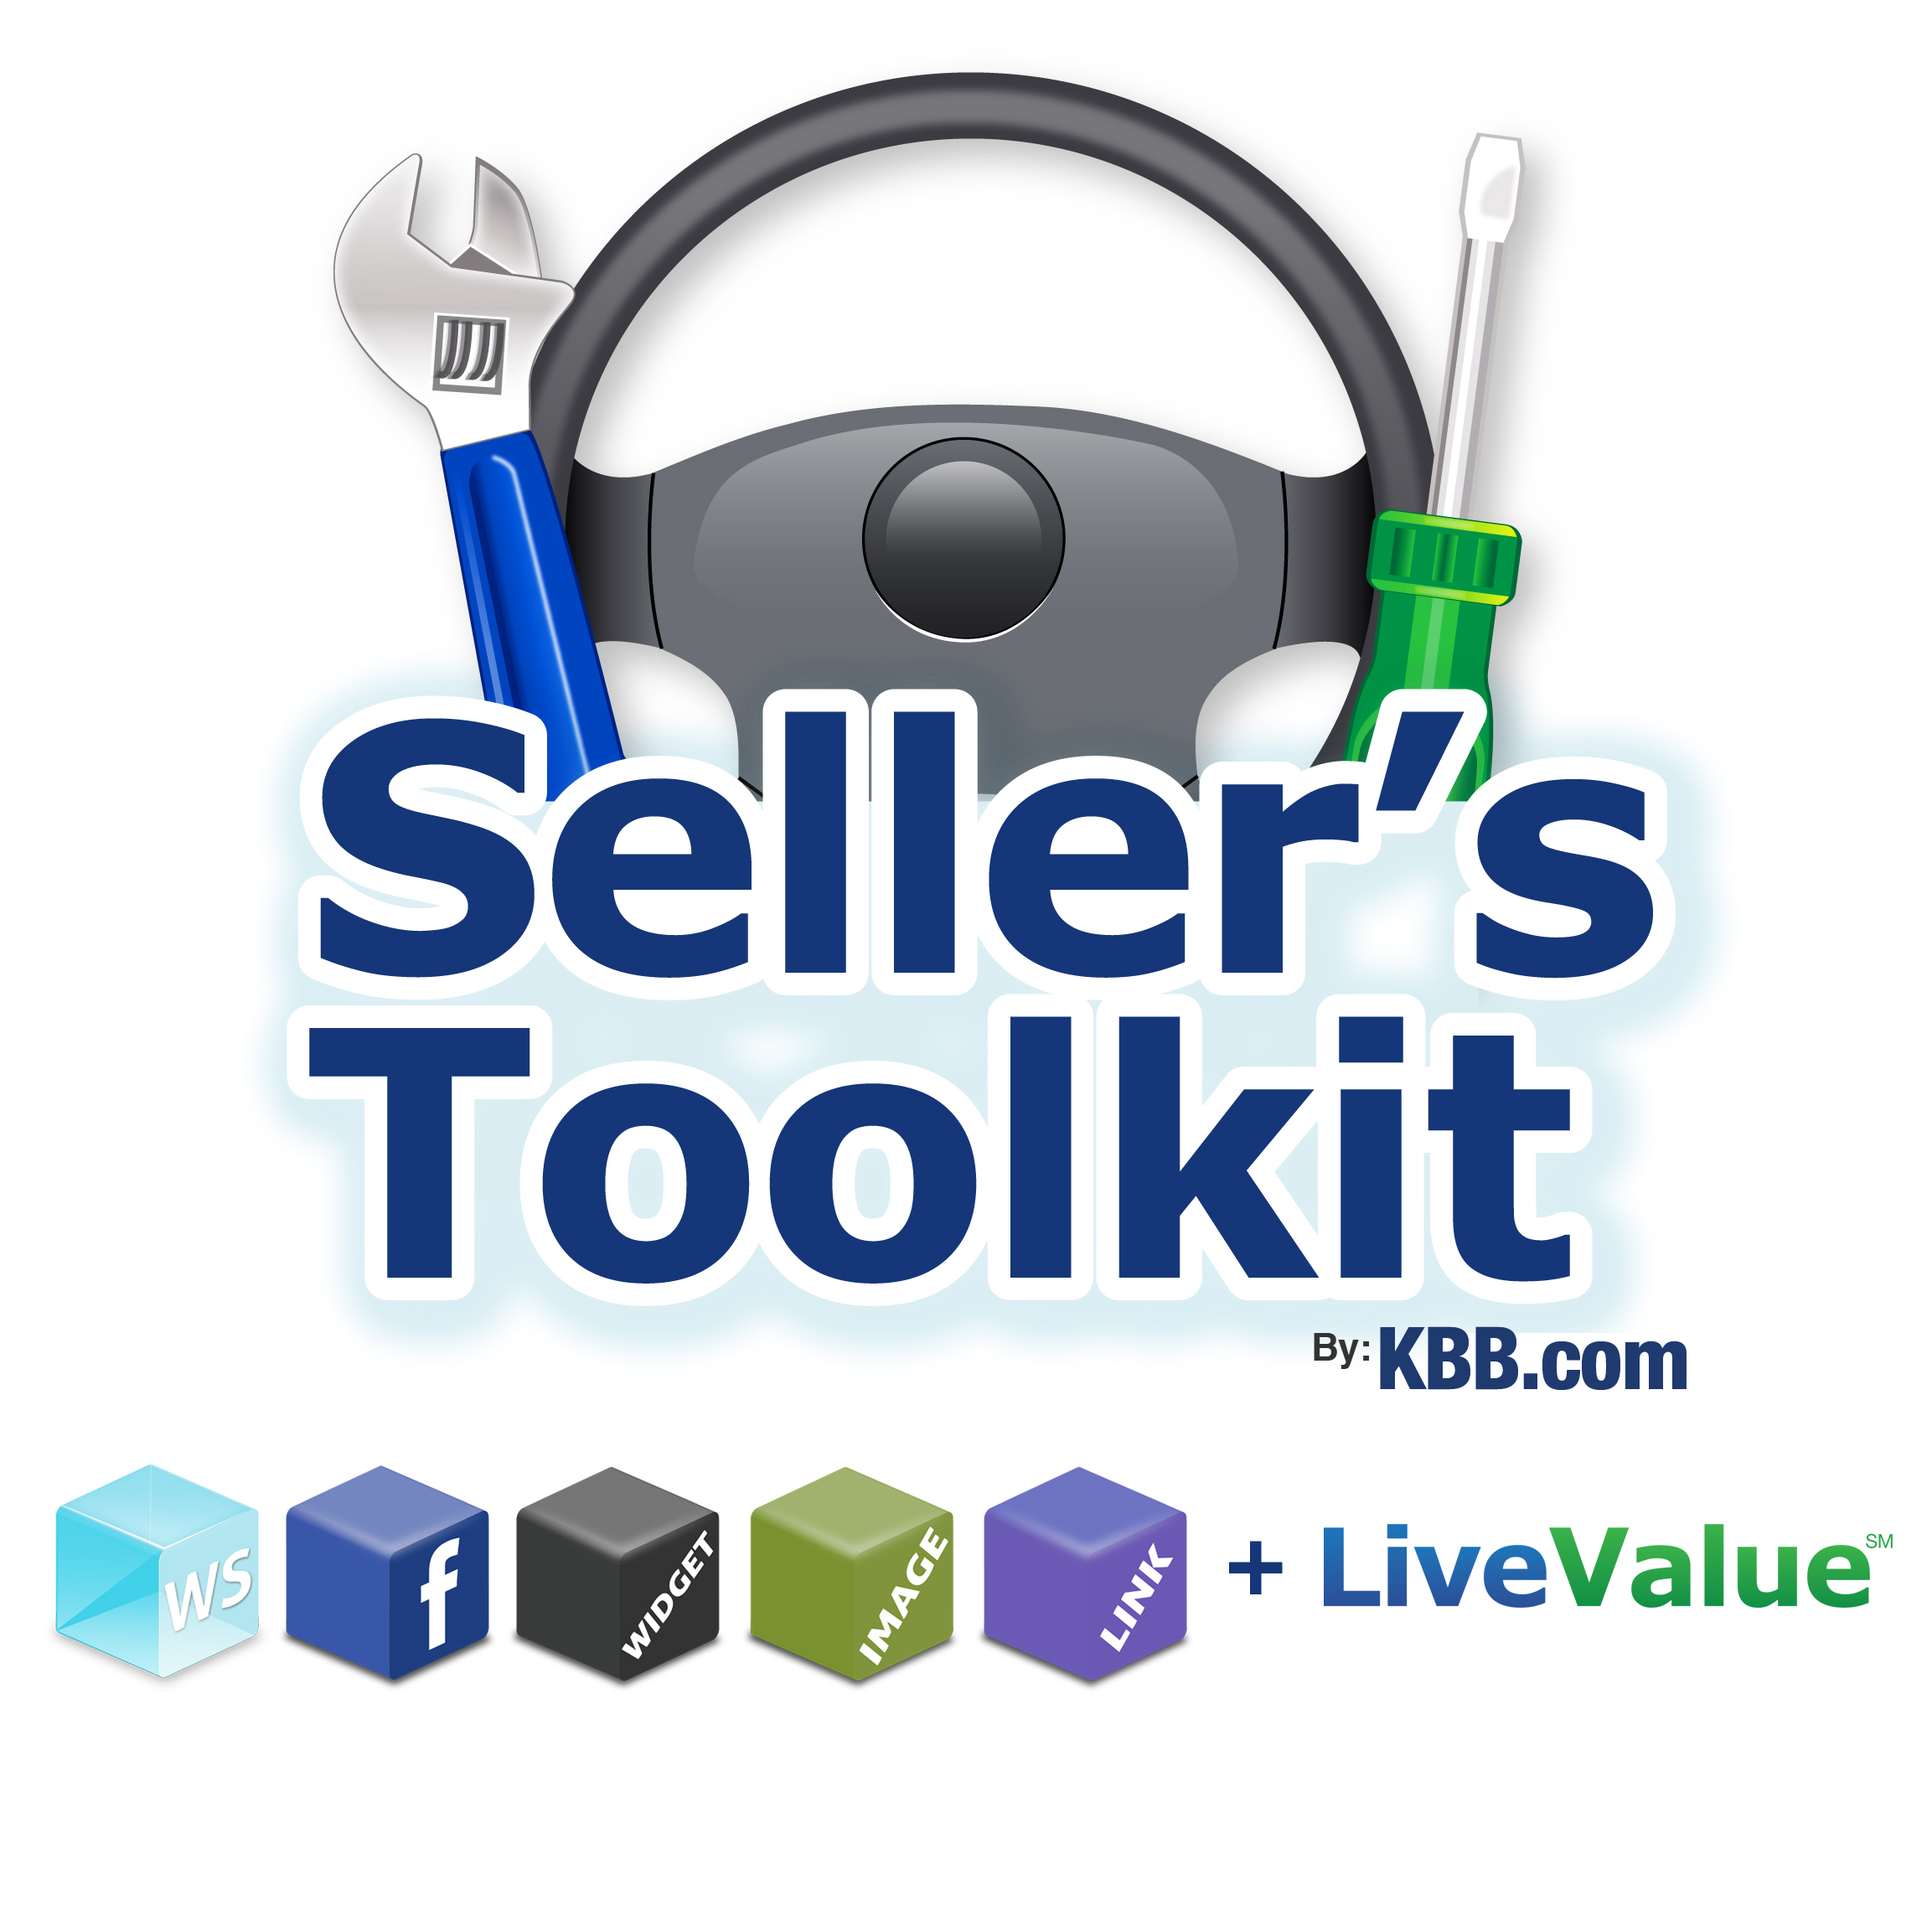 Kelley Blue Book Used Car Prices Unique Video Sell Your Car Across the Web with Kbb S Seller S toolkit